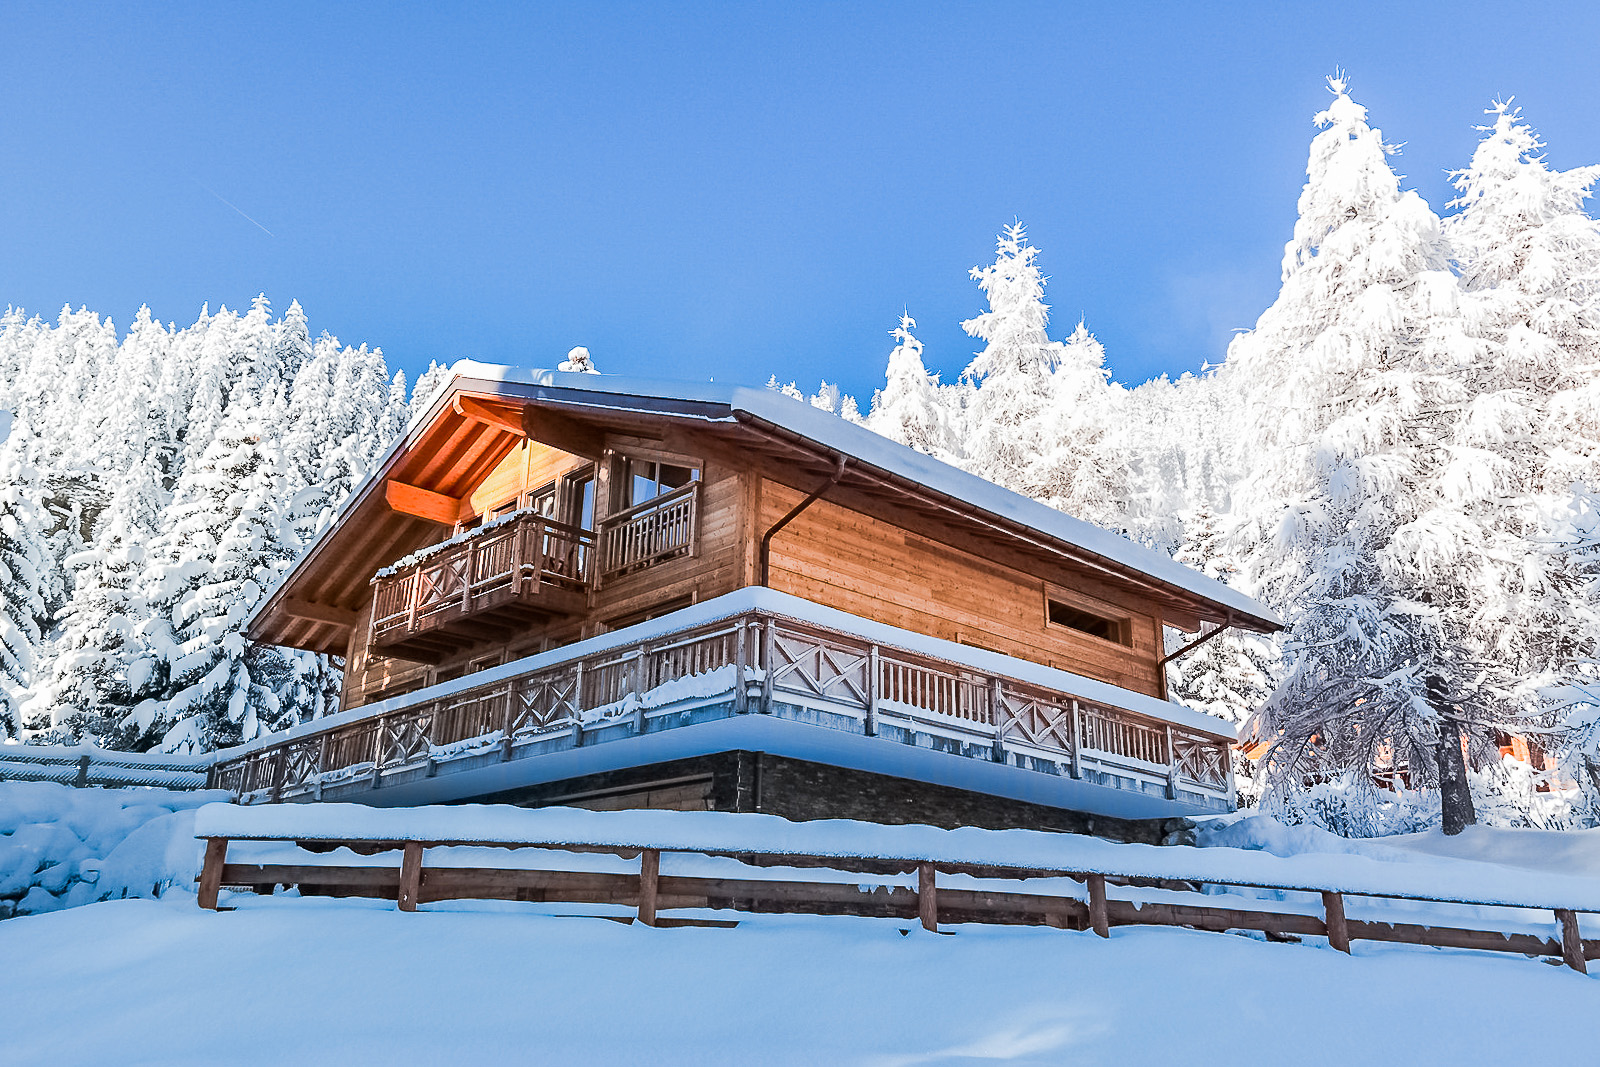 One of the chalets at Crans Luxury Lodges. How not being scammed when contracting your ski chalet holiday. Photo Crans Luxury Lodges.